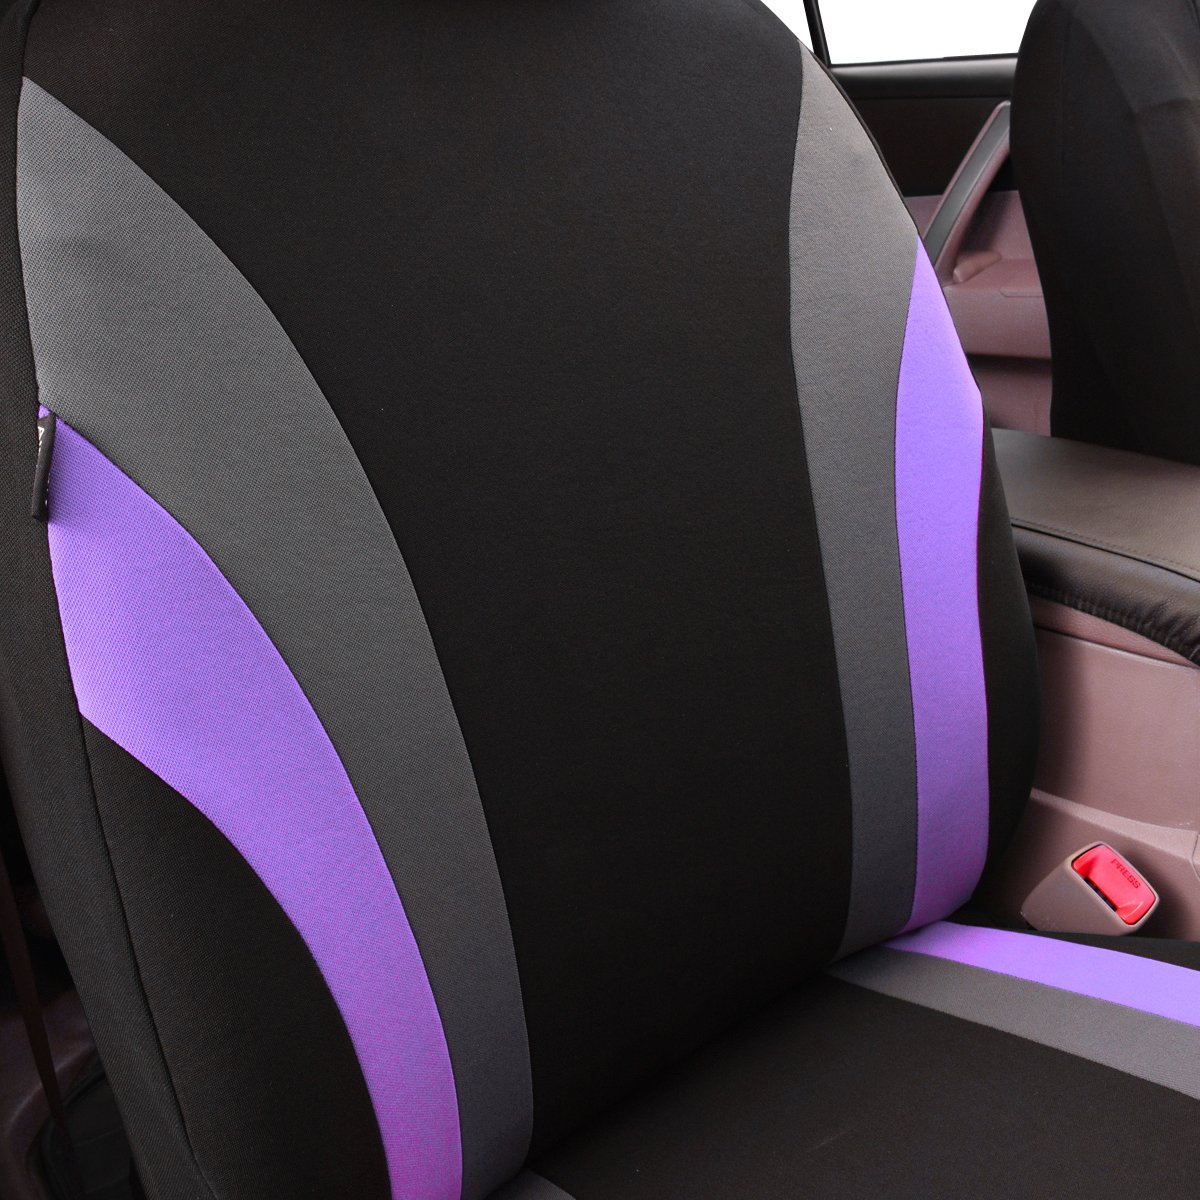 CAR PASS Line Rider 11PCS Universal Fit Car Seat Cover 100/% Breathable With 5mm Composite Sponge Inside,Airbag Compatible Black with rose pink NEW ARRIVAL